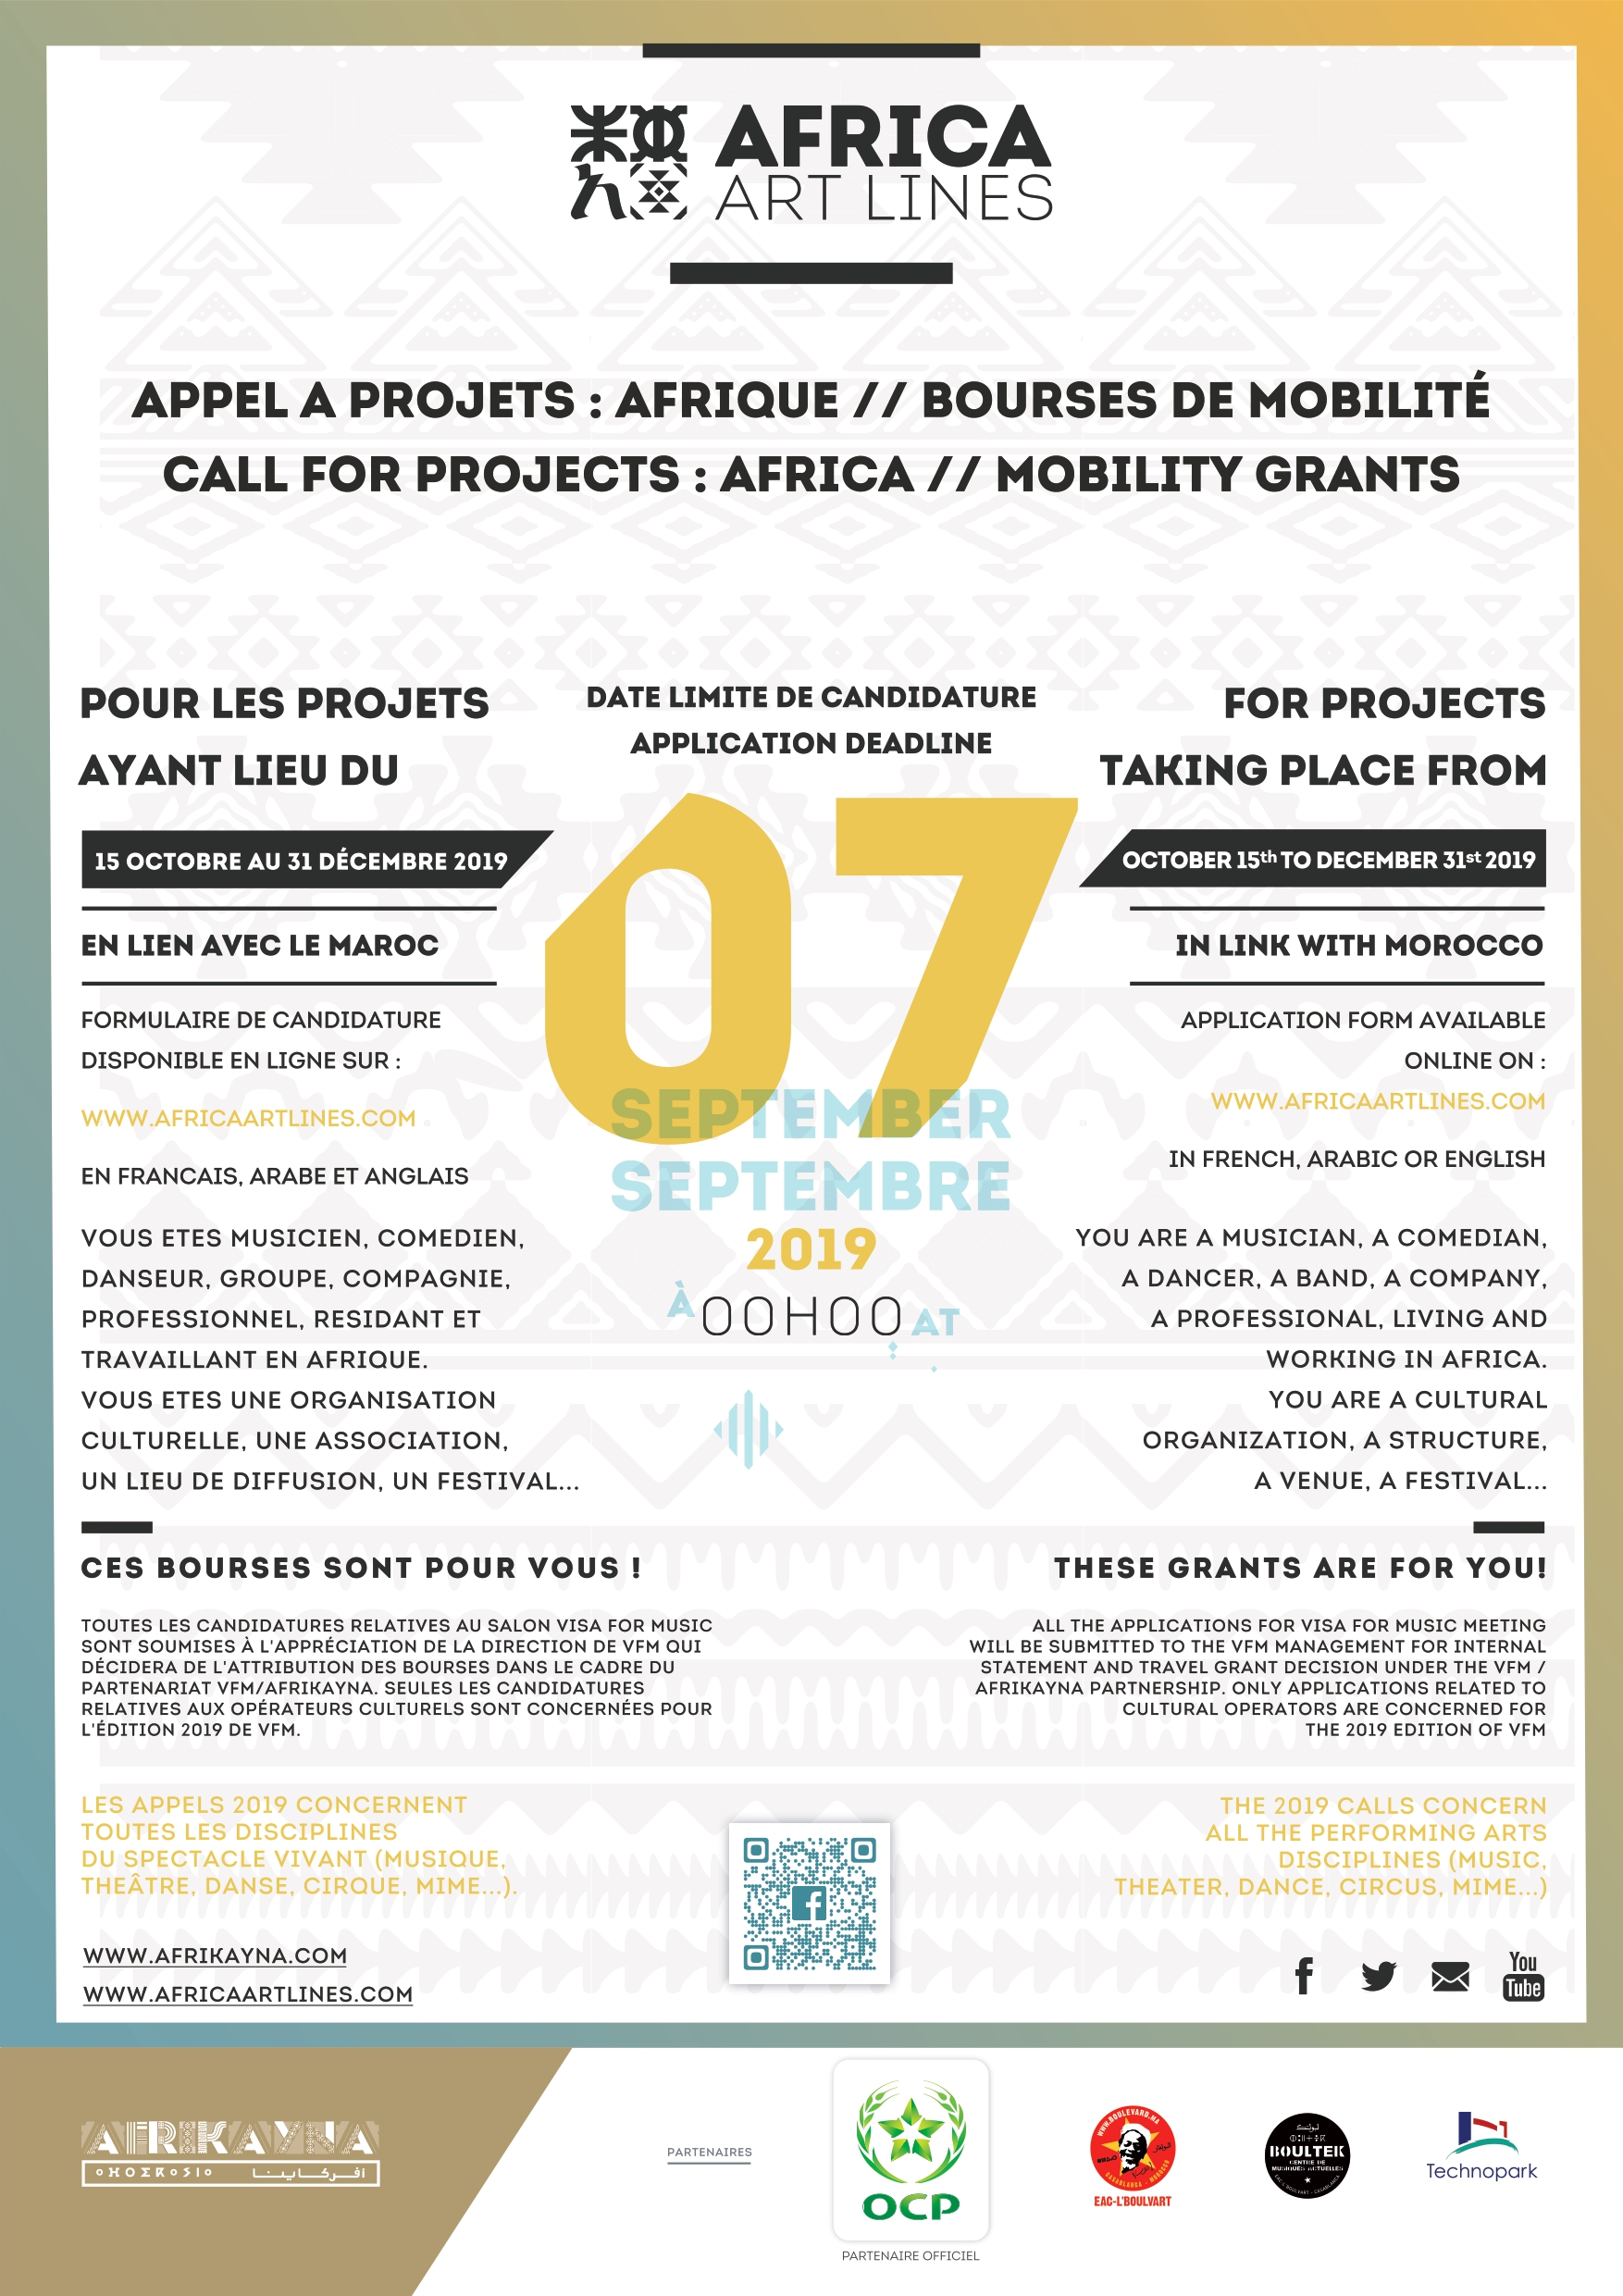 APPEL A PROJETS AFRICA ART LINES N°2 – 2019